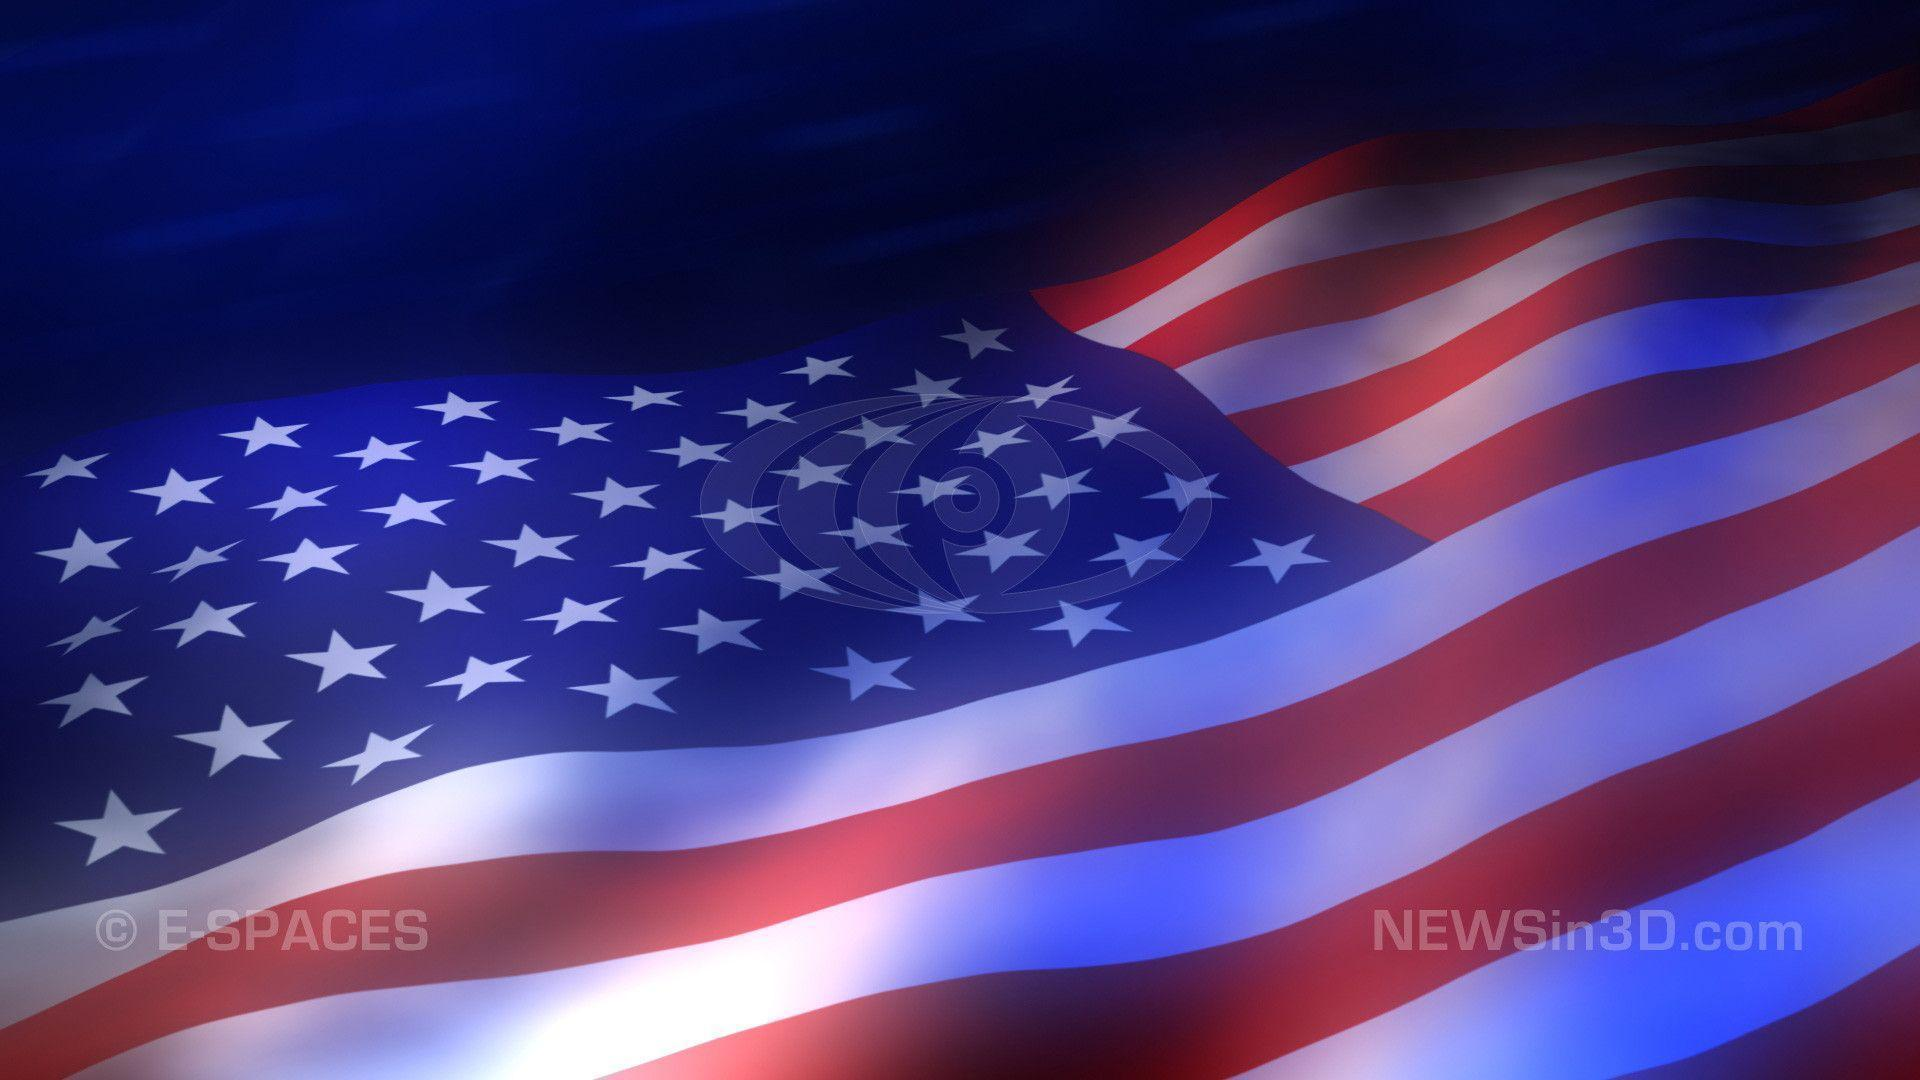 American Flag Looping Animated Backgrounds